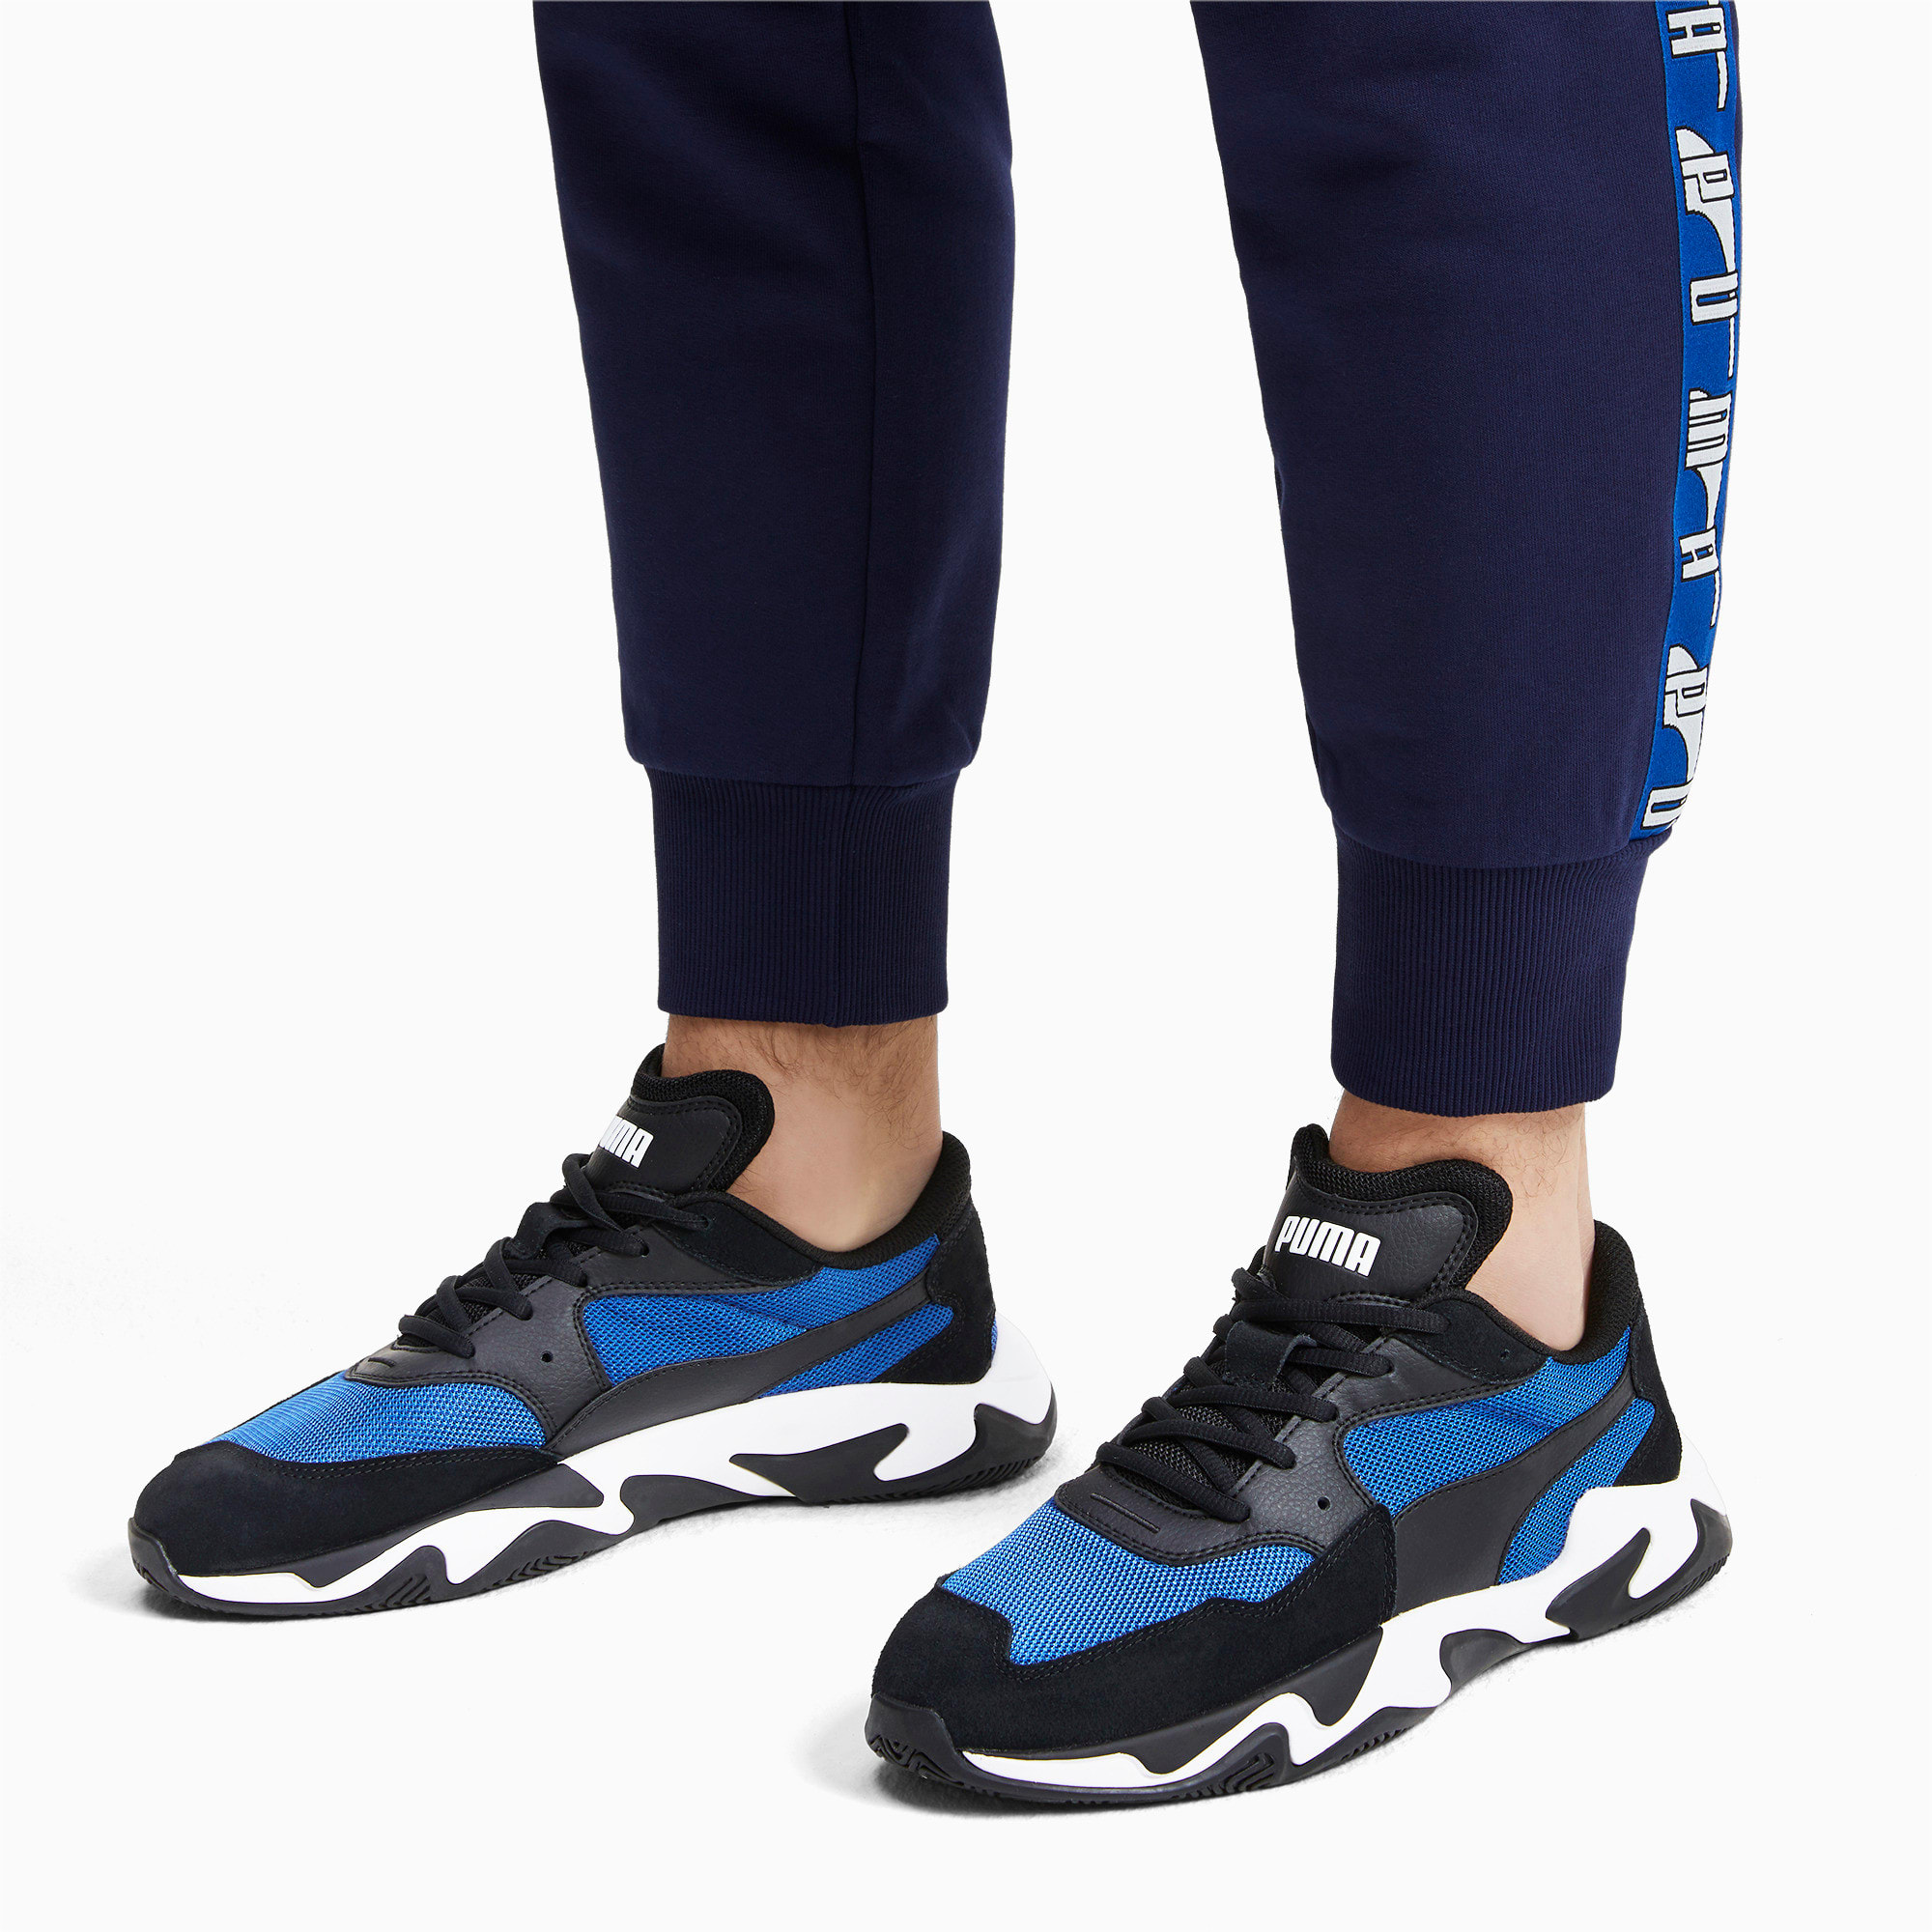 Thumbnail 2 of Storm Adrenaline Sneaker, Puma Black-Galaxy Blue, medium